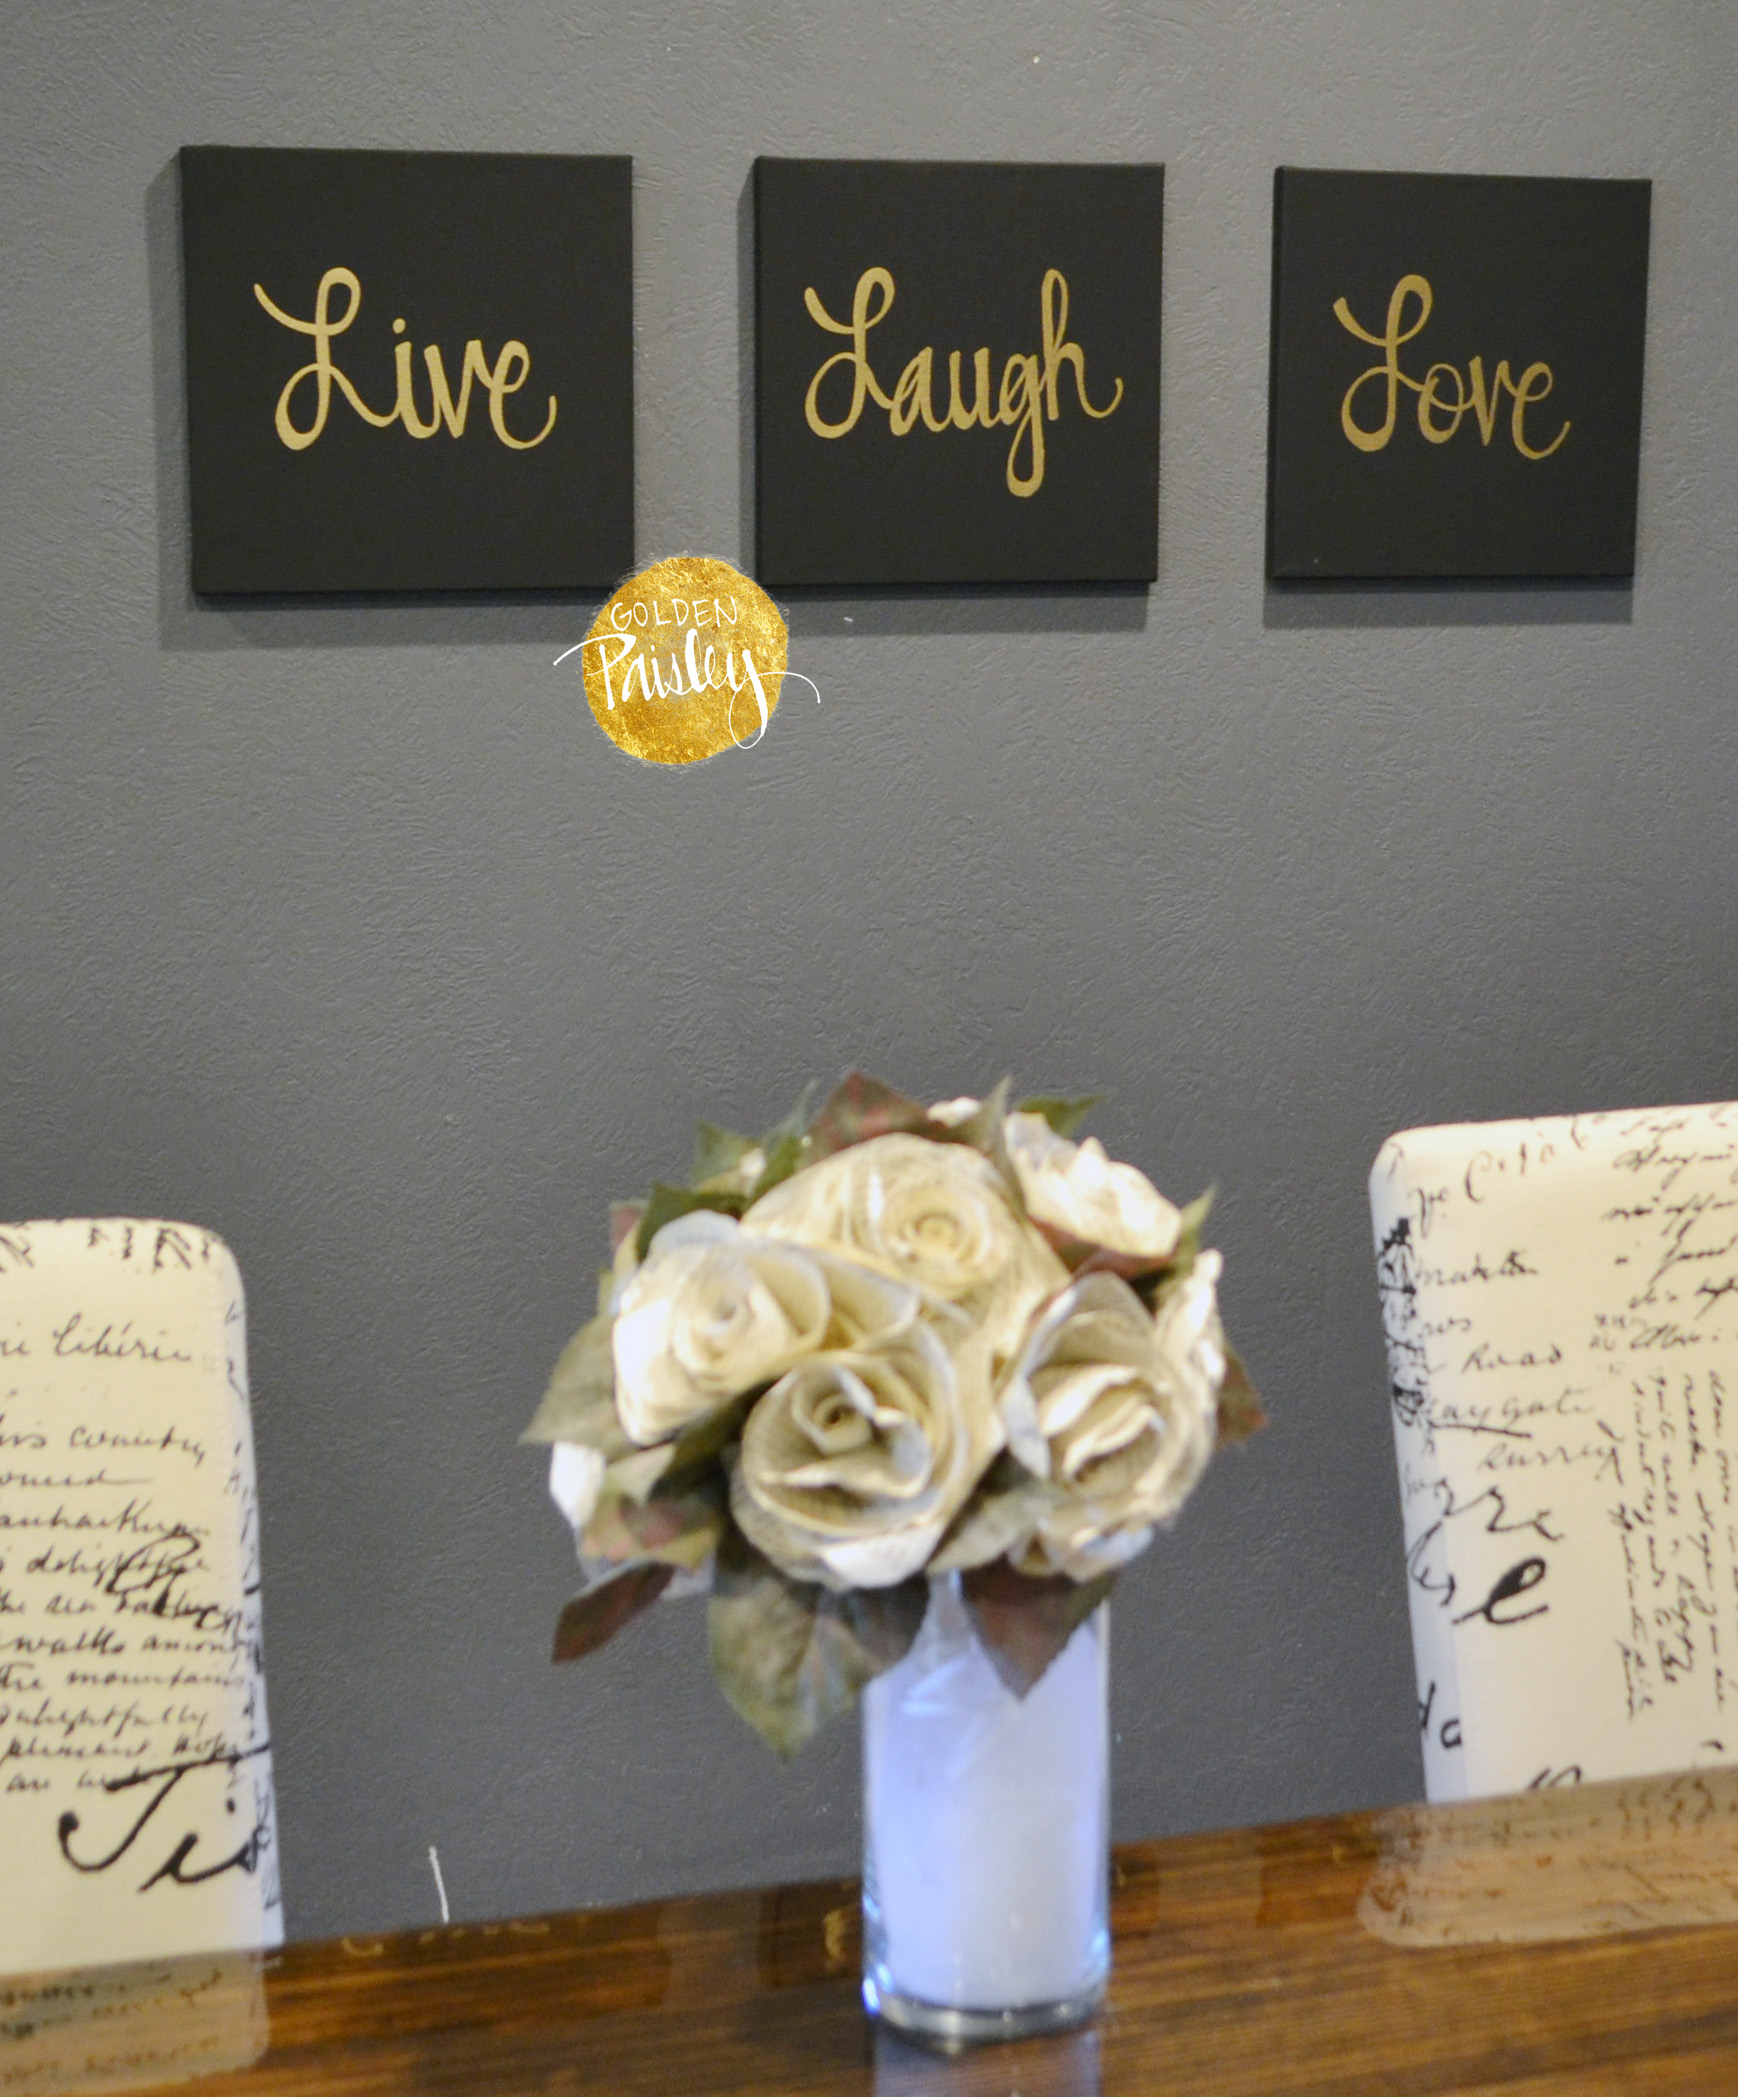 2019 Live Laugh Love Black & Gold 3 Piece Wall Decor Set Pertaining To Live Love Laugh 3 Piece Black Wall Decor Sets (View 1 of 20)